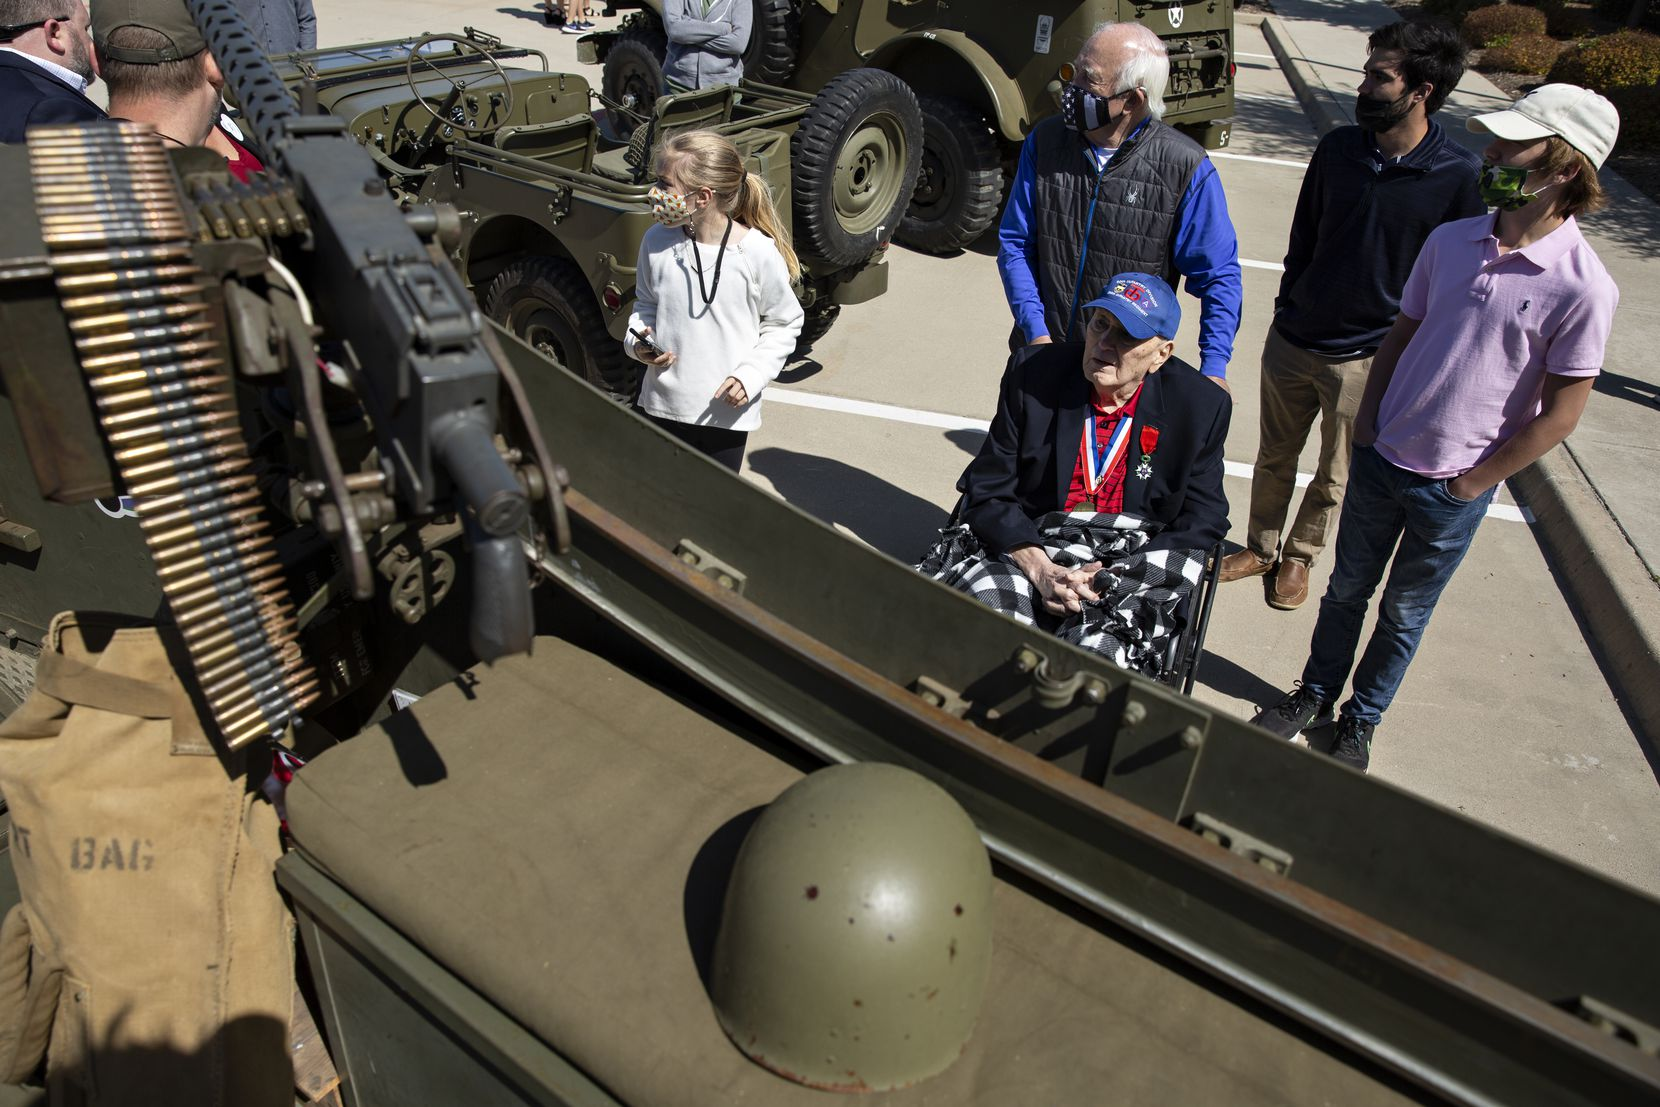 From left, Mercer Neilon, 11, Bill Richards, Burnie Sutter, Jensen Morey, and Brett Richards, 14, check out an old military vehicle during the parade.